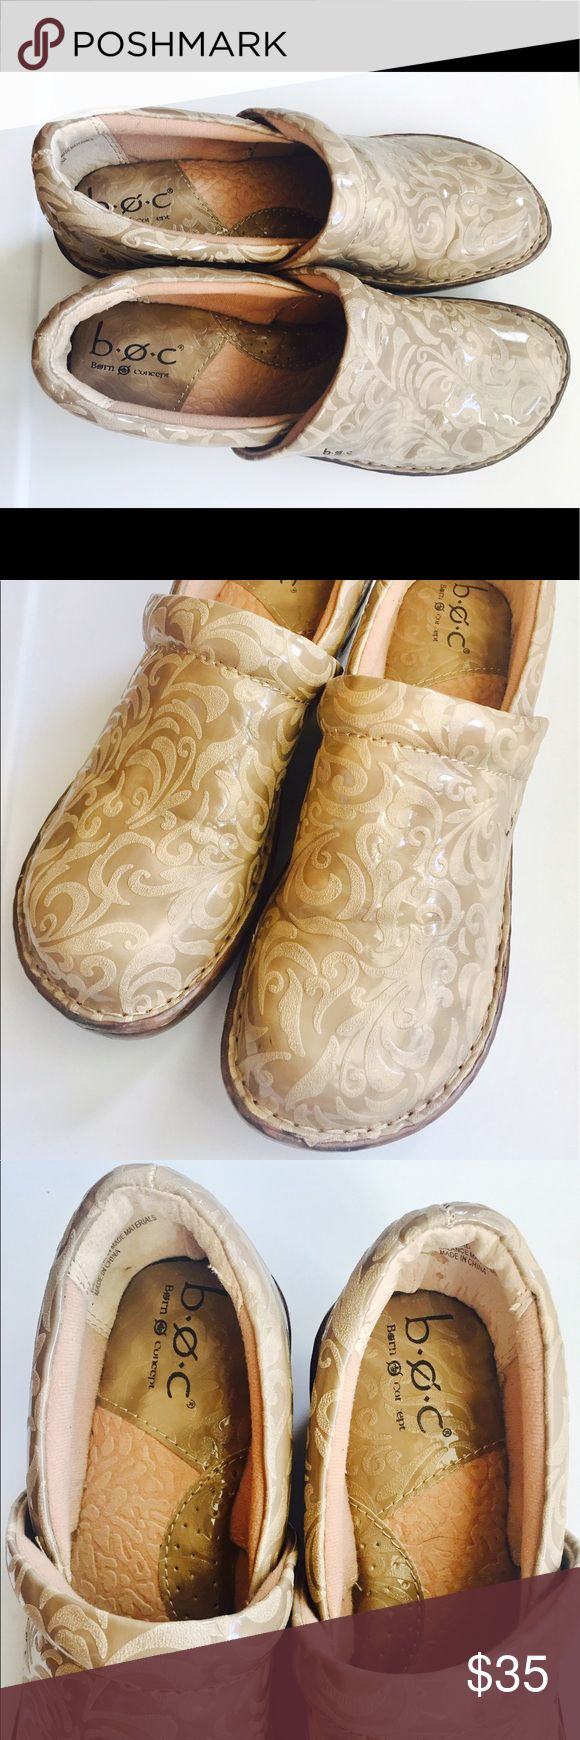 BOC Born Concept Clog Shoes BOC Born Concept Clog Shoes Peggy Beige Leather Tooled  Size 8  Great for Work, Medical, RN, cooks Great preowned condition b.o.c. Shoes Mules & Clogs